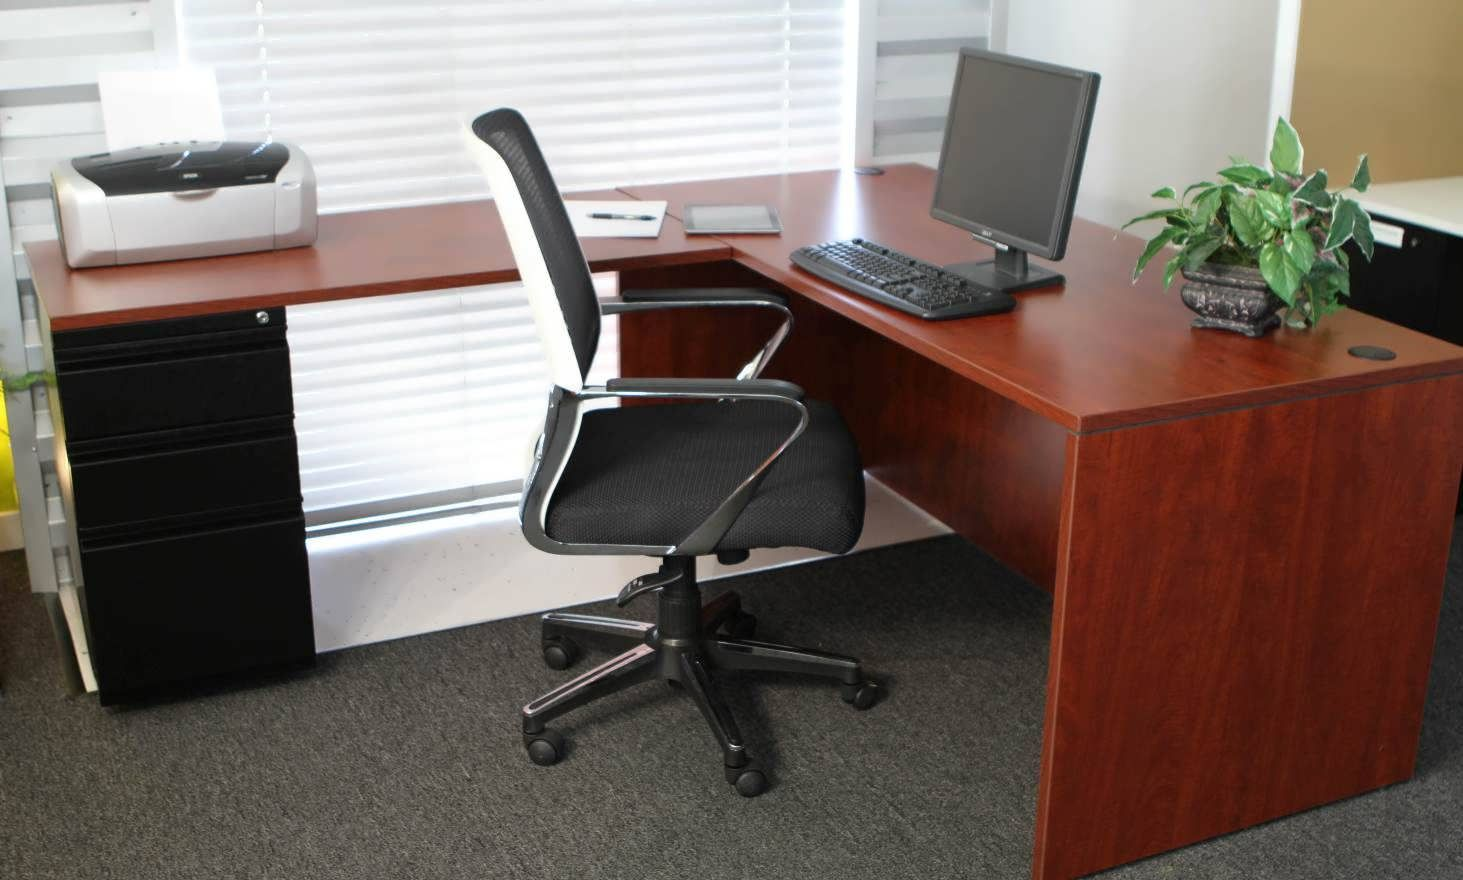 Superieur 20+ Office Desk Clearance   Home Office Furniture Ideas Check More At Http:/